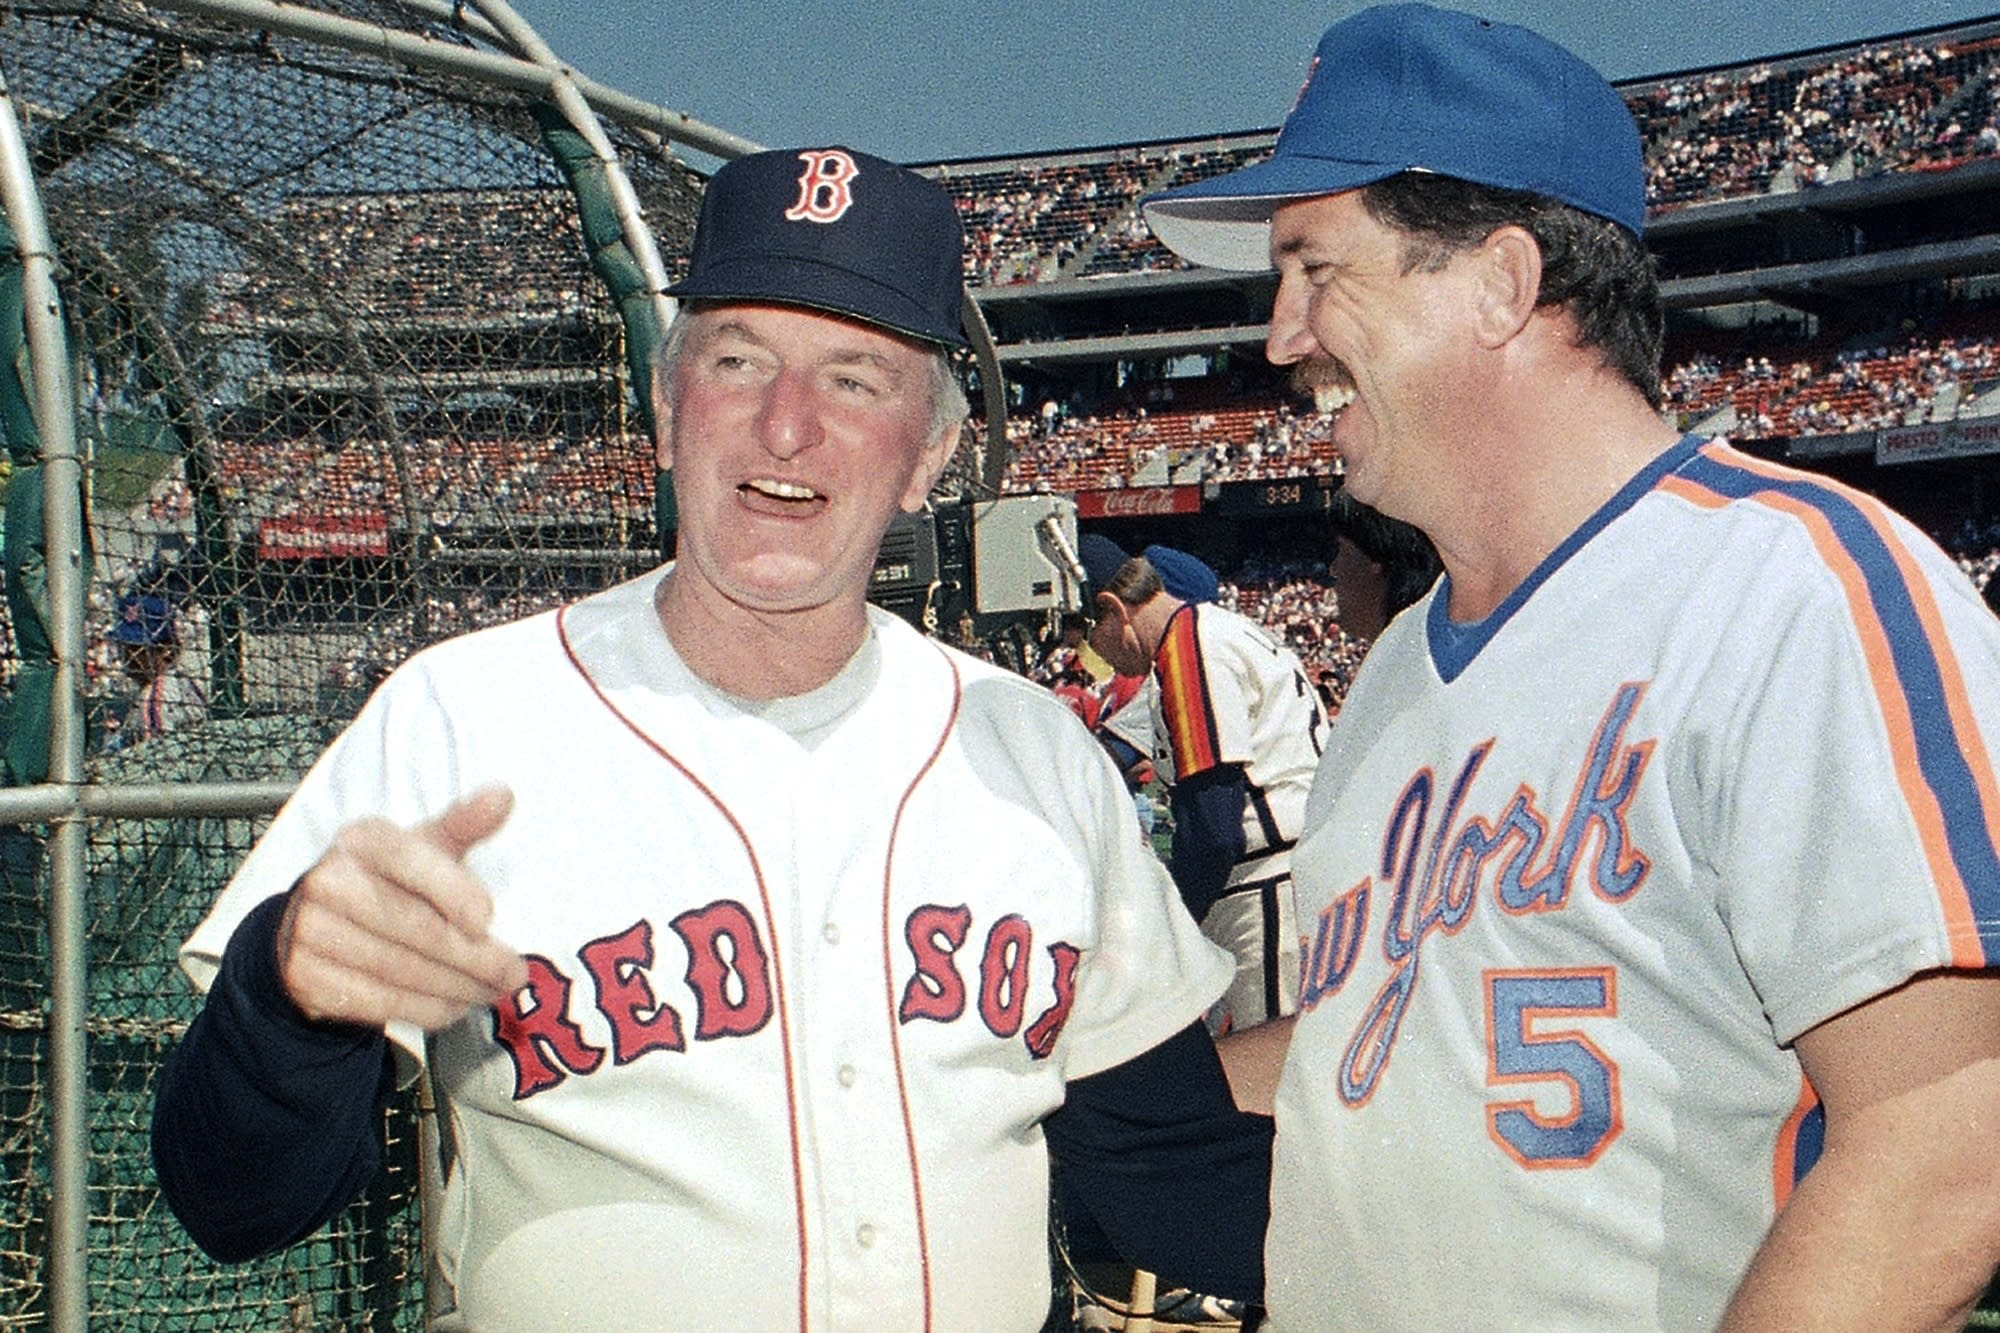 FILE - In this July 13, 1987, file photo, American League All-Star manager John McNamara, left, of the Boston Red Sox, chats with National League counterpart Davey Johnson, of the New York Mets, between workouts in preparation for the upcoming All-Star Game in in Oakland, Calif. McNamara, who managed several Major League Baseball teams during his career, died Tuesday, July 28, 2020, in Tennessee. He was 88. (AP Photo/Paul Sakuma, File)